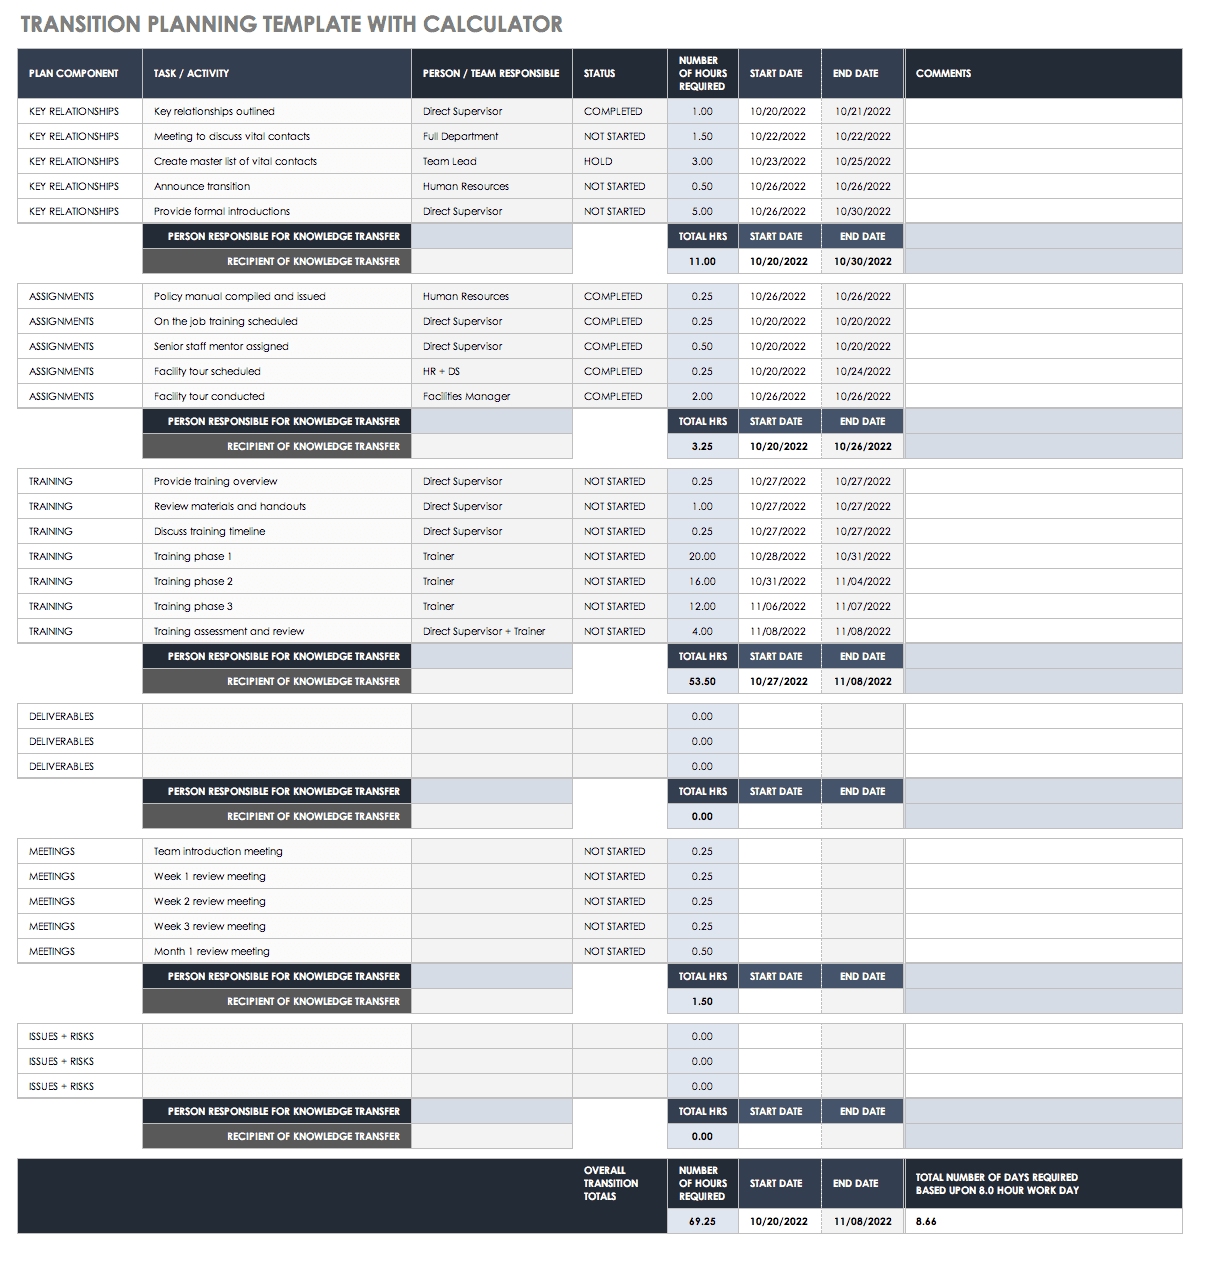 free business transition plan templates